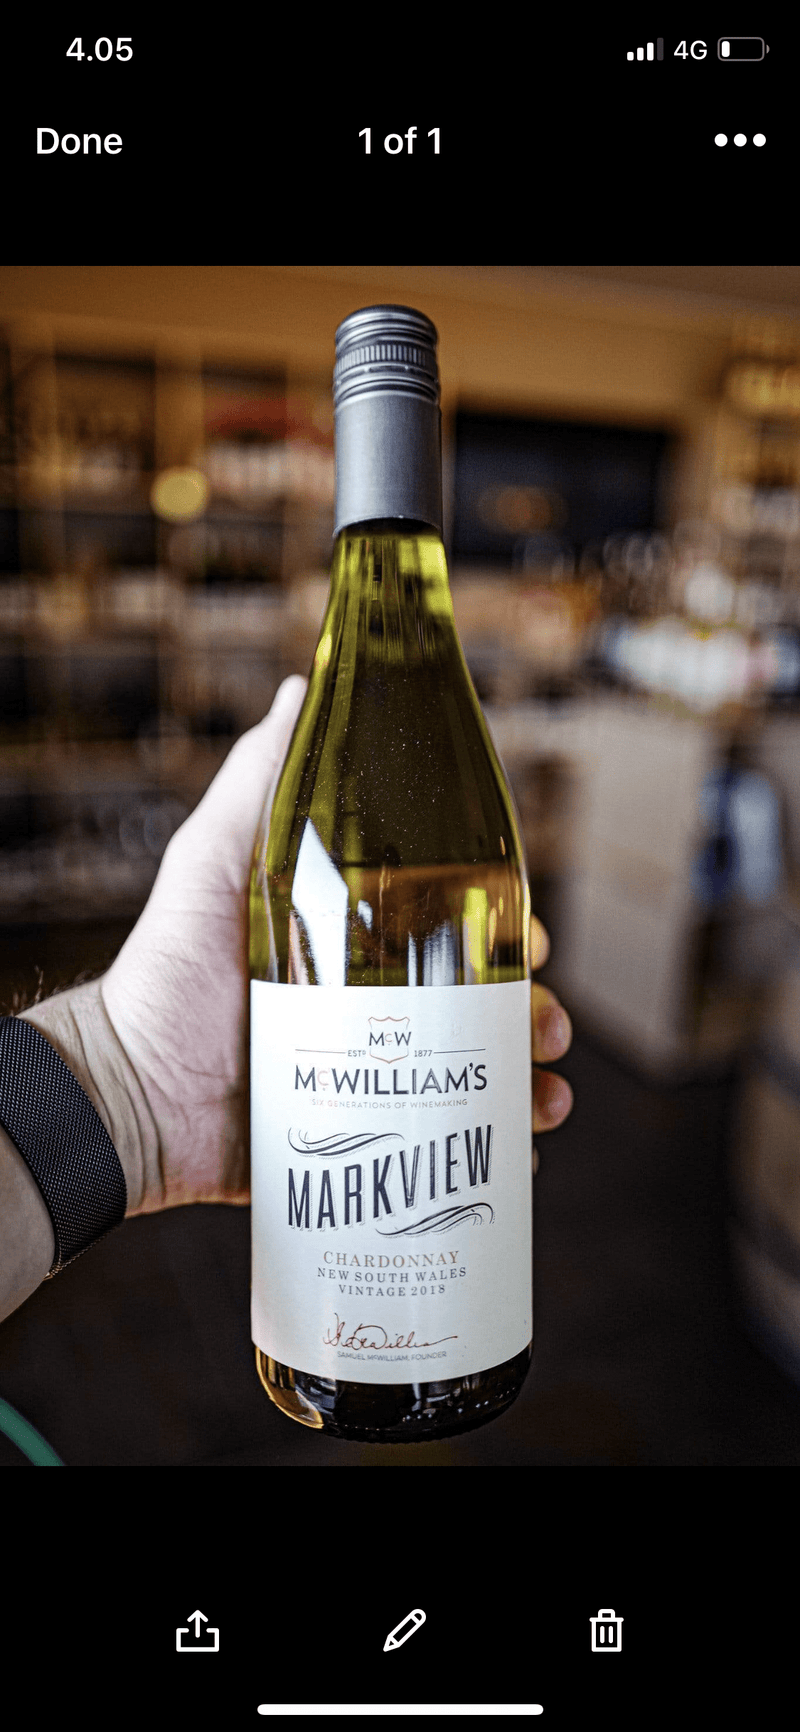 McWilliams Hvidvin Markview Chardonnay 2019